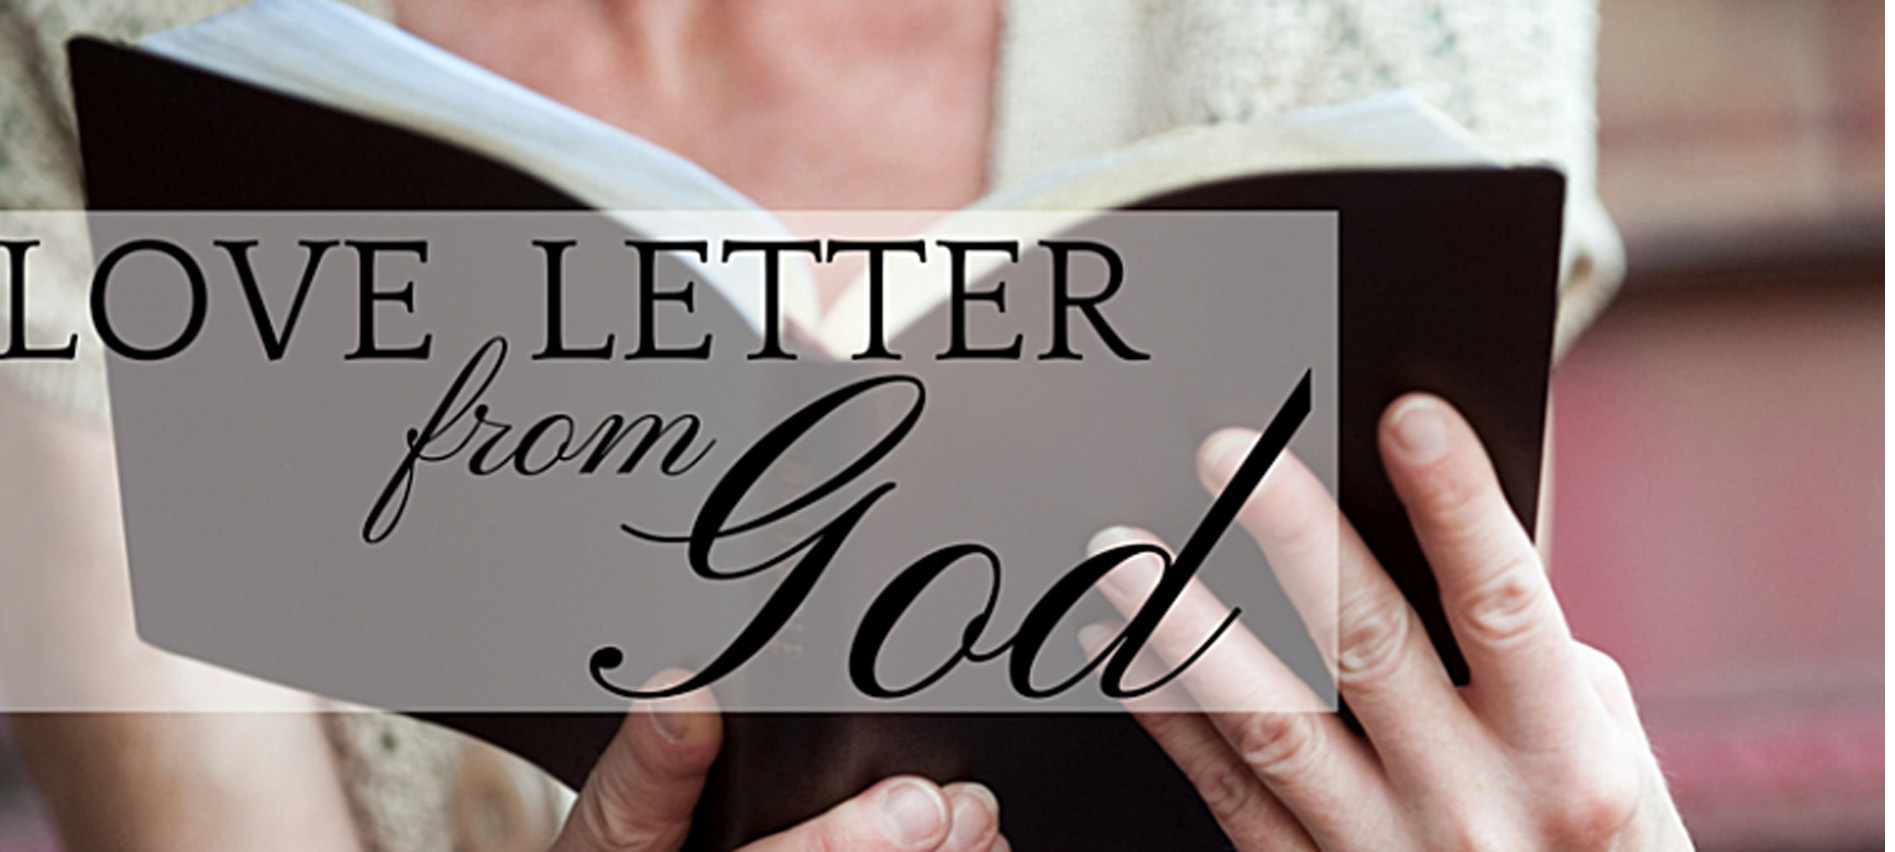 Have You Read God s Love Letter